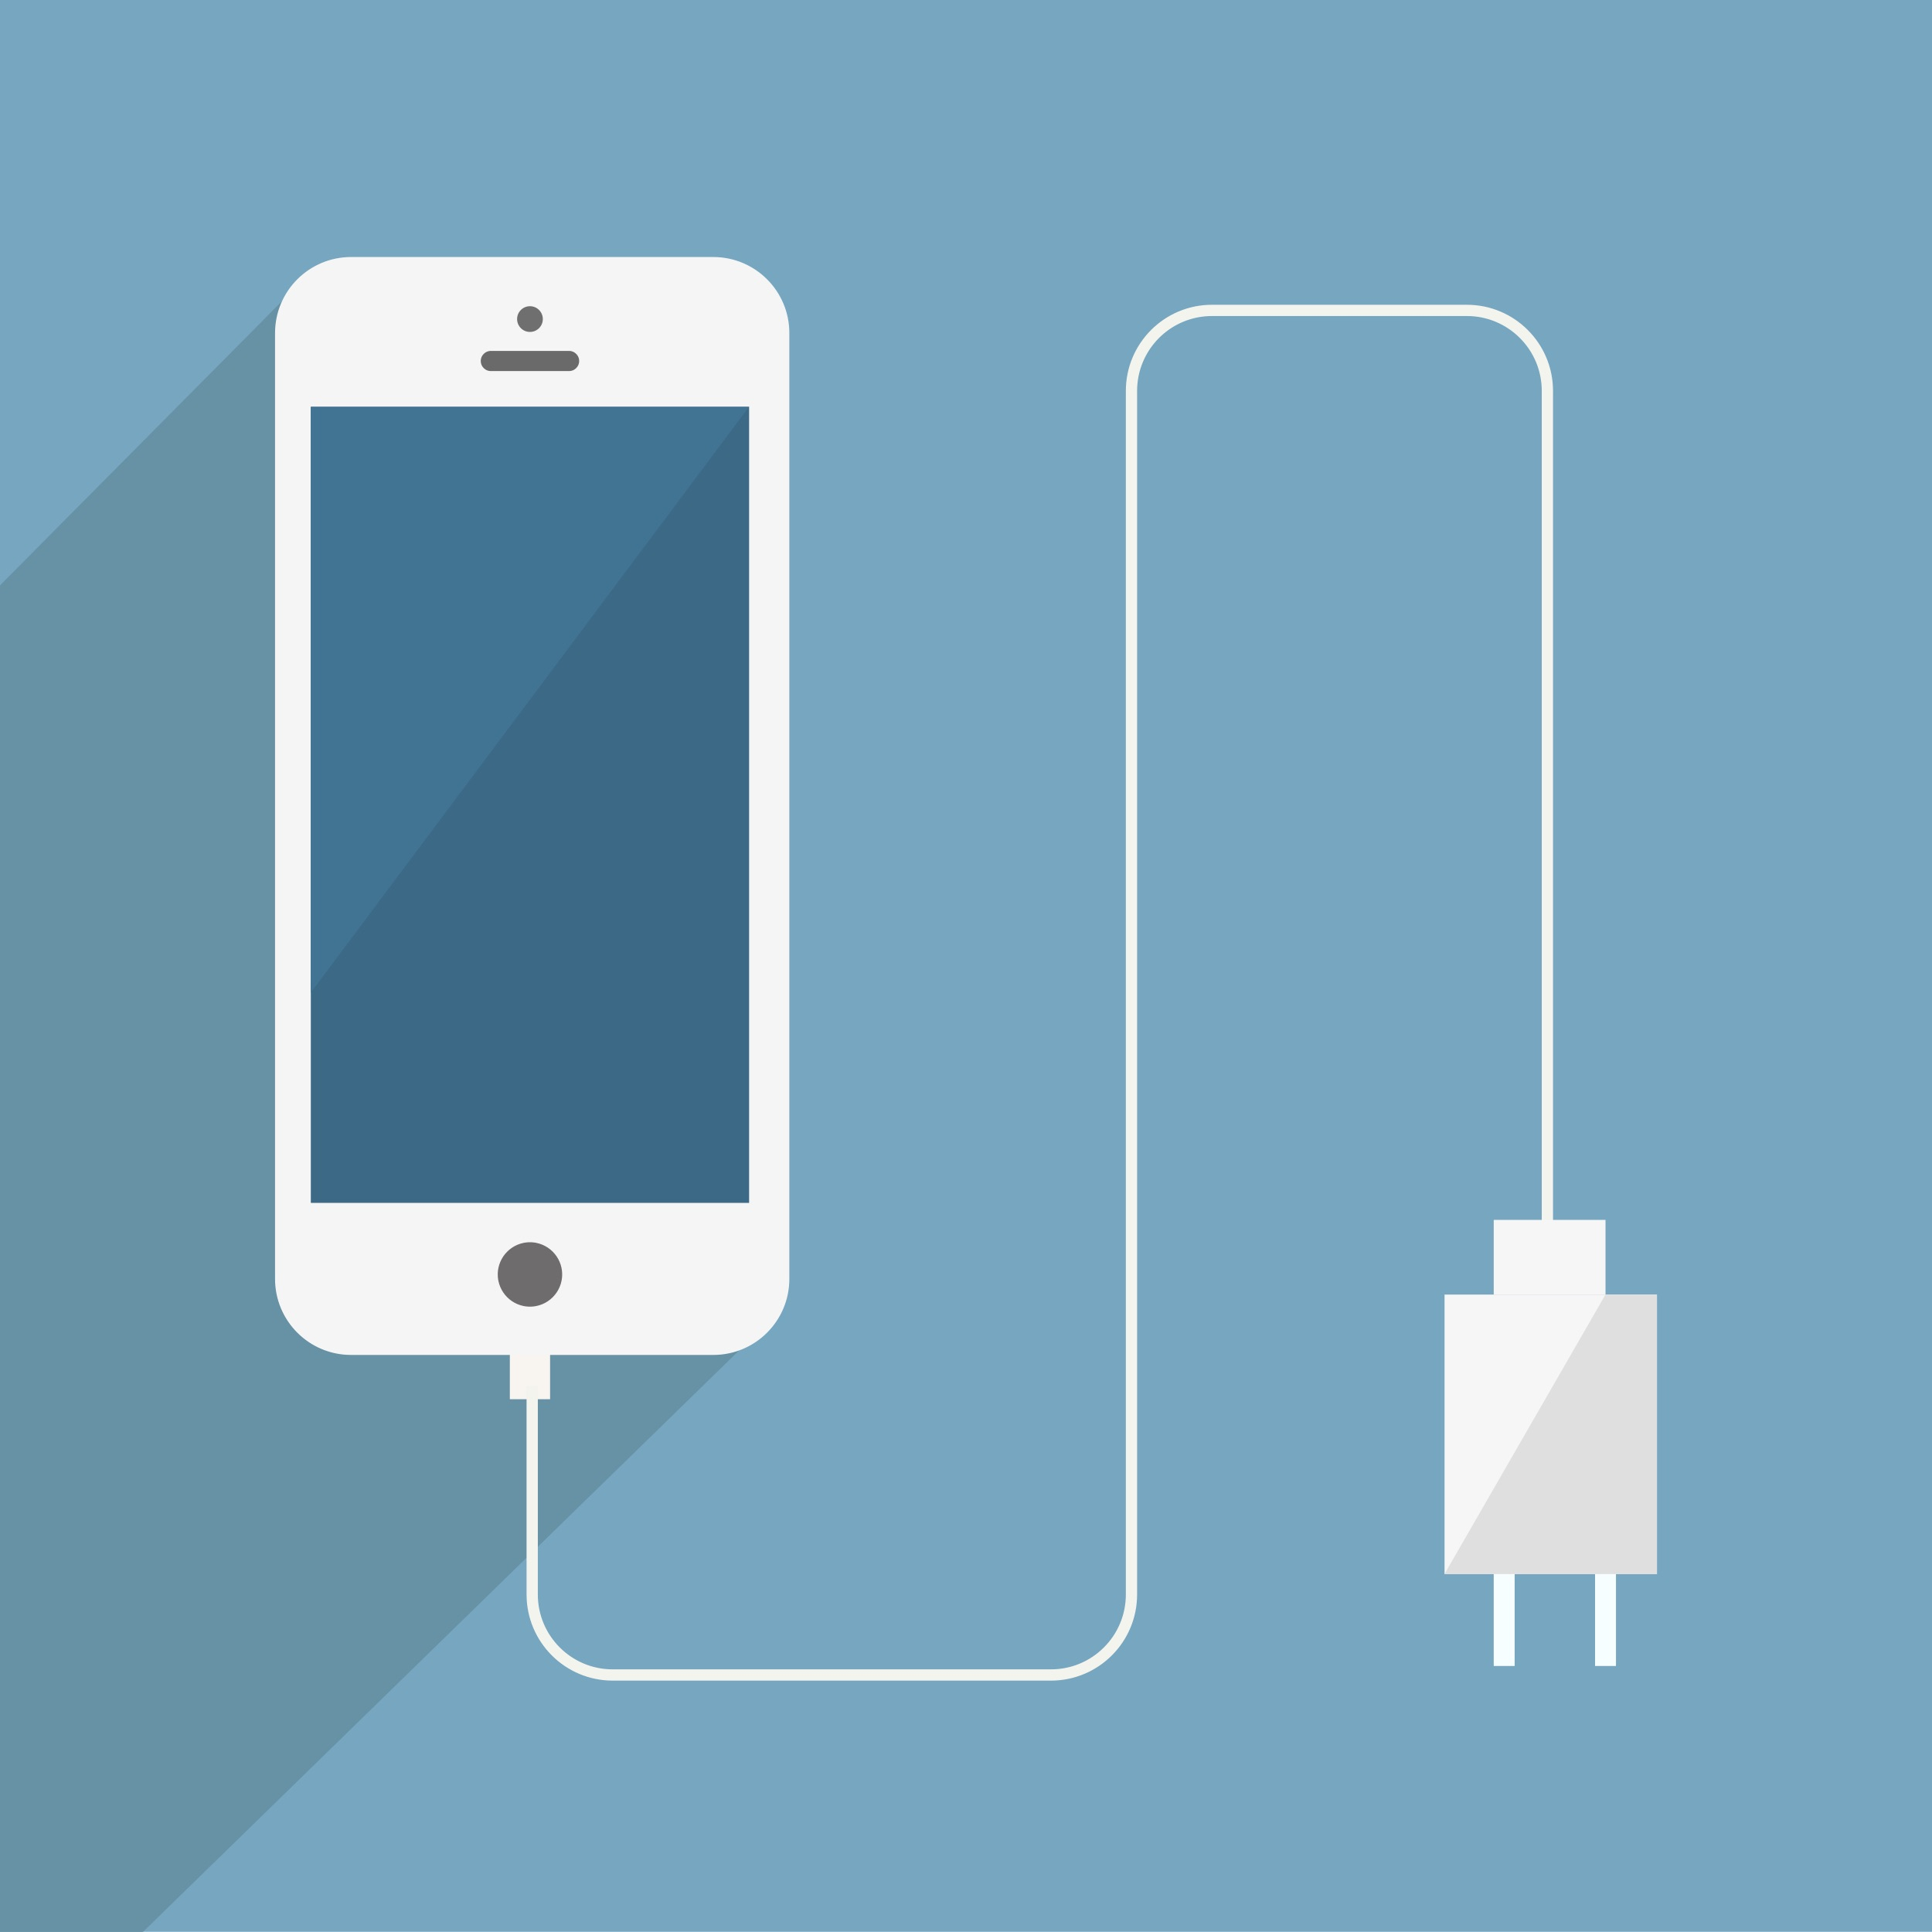 iPhone charger.jpg